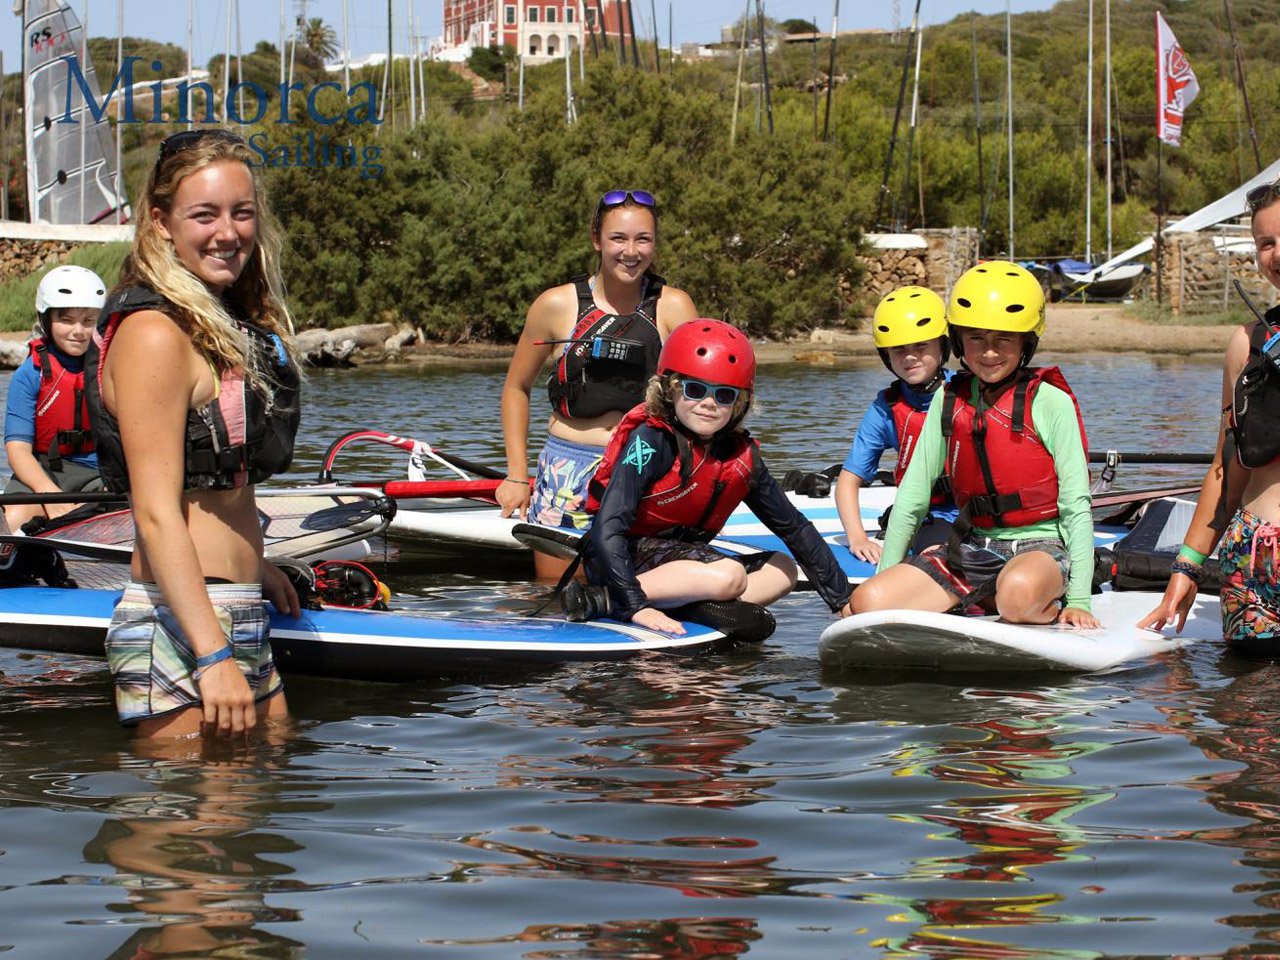 Children learn to windsurf